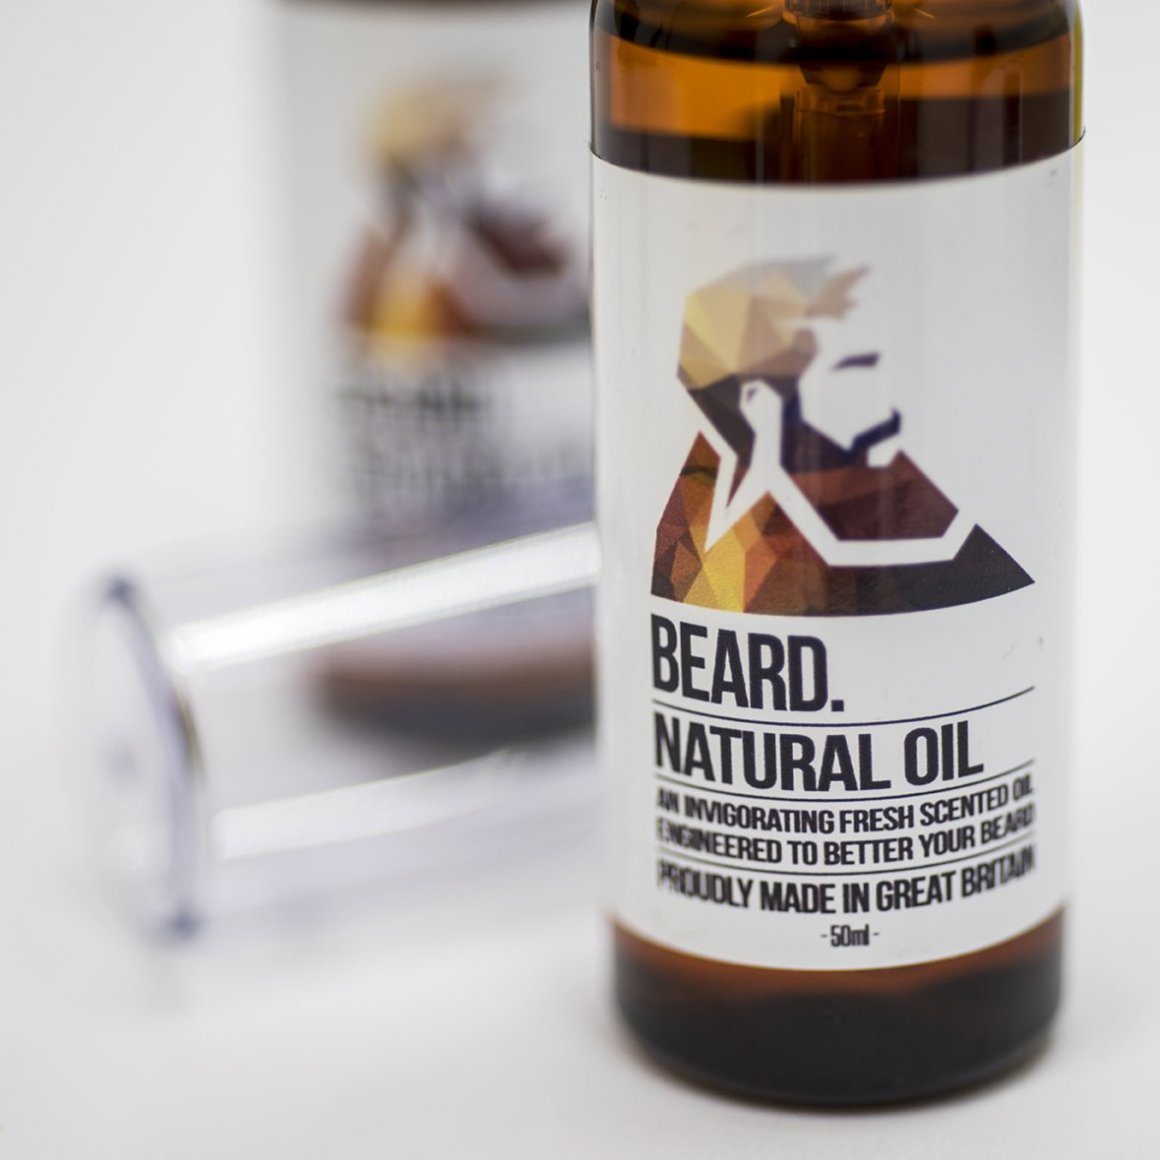 Review: Original Beard Co Beard Oil